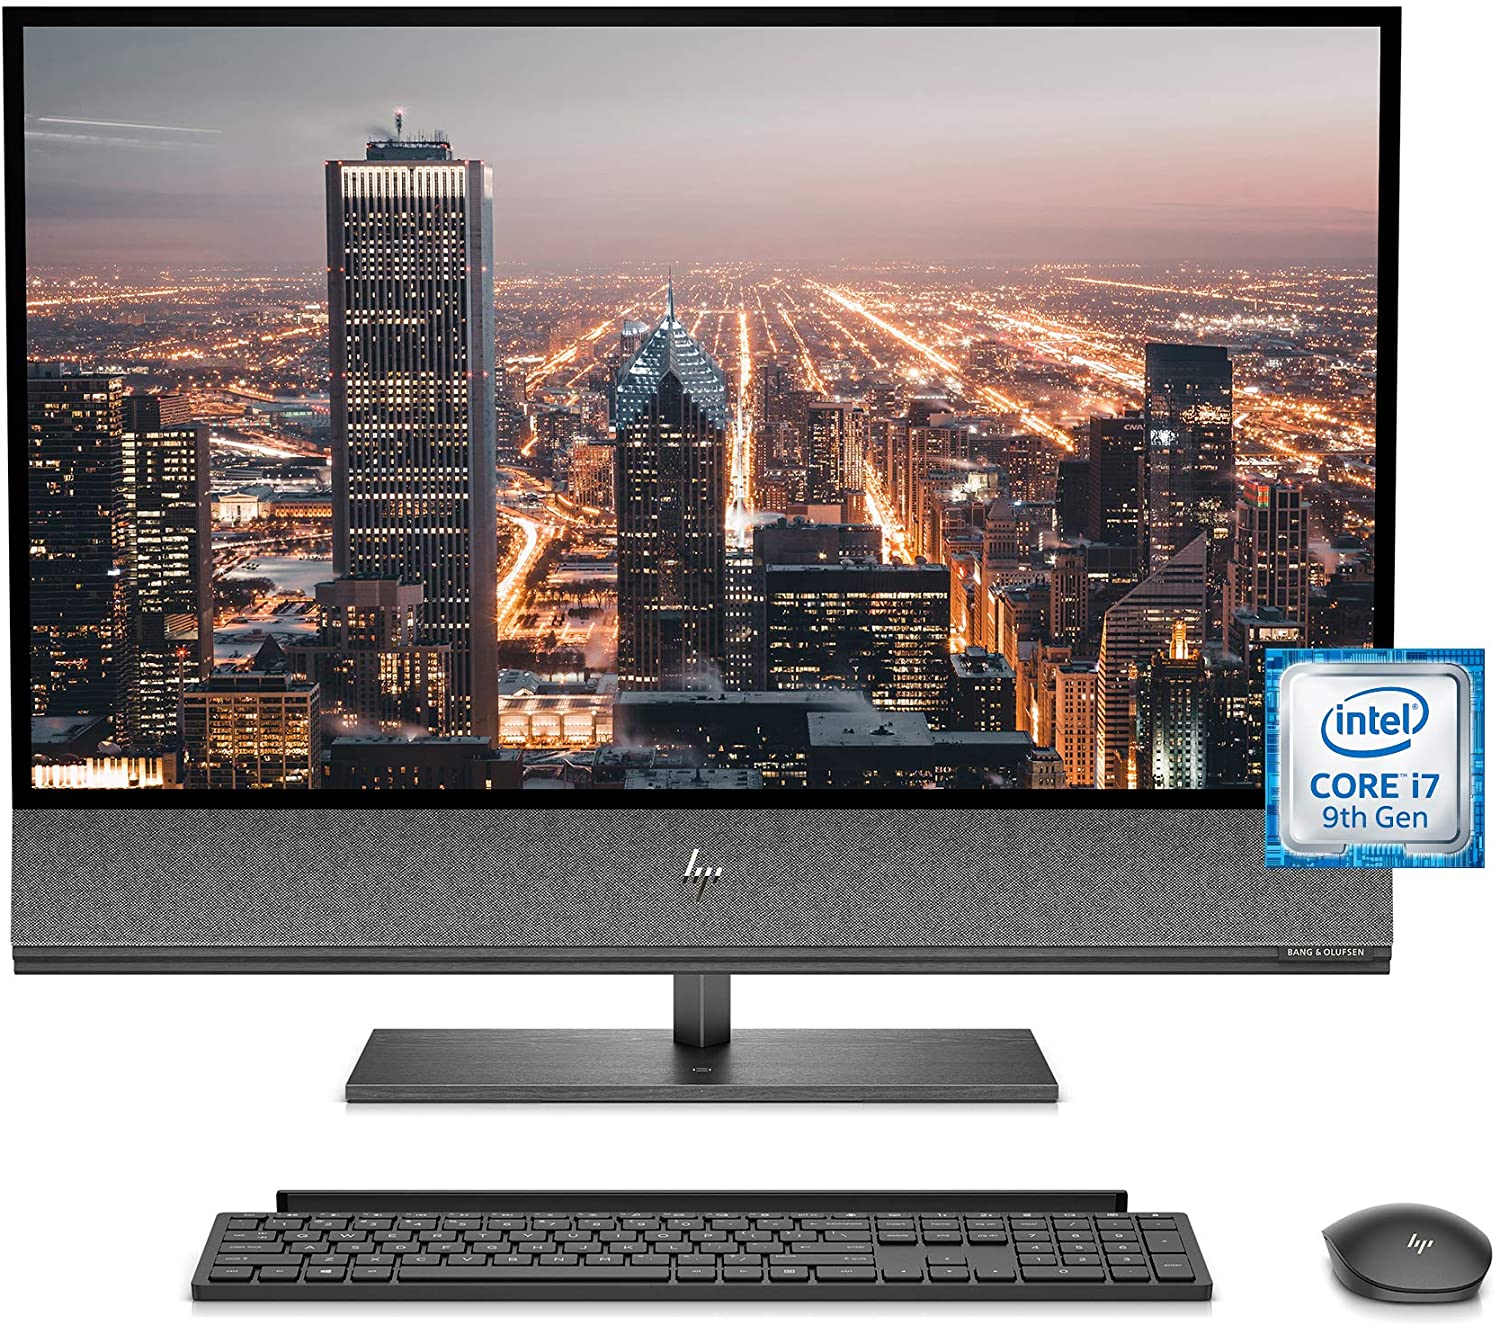 HP ENVY 32 All-in-One PC, 9th Gen Intel Core i7-9700 Processor, 4K UHD monitor, NVIDIA GeForce RTX 2060 graphics (6 GB), 32 GB RAM, 32 GB Intel Optane, 1 TB SSD, Windows 10 (32-a0040, Black) (6YR48AA)